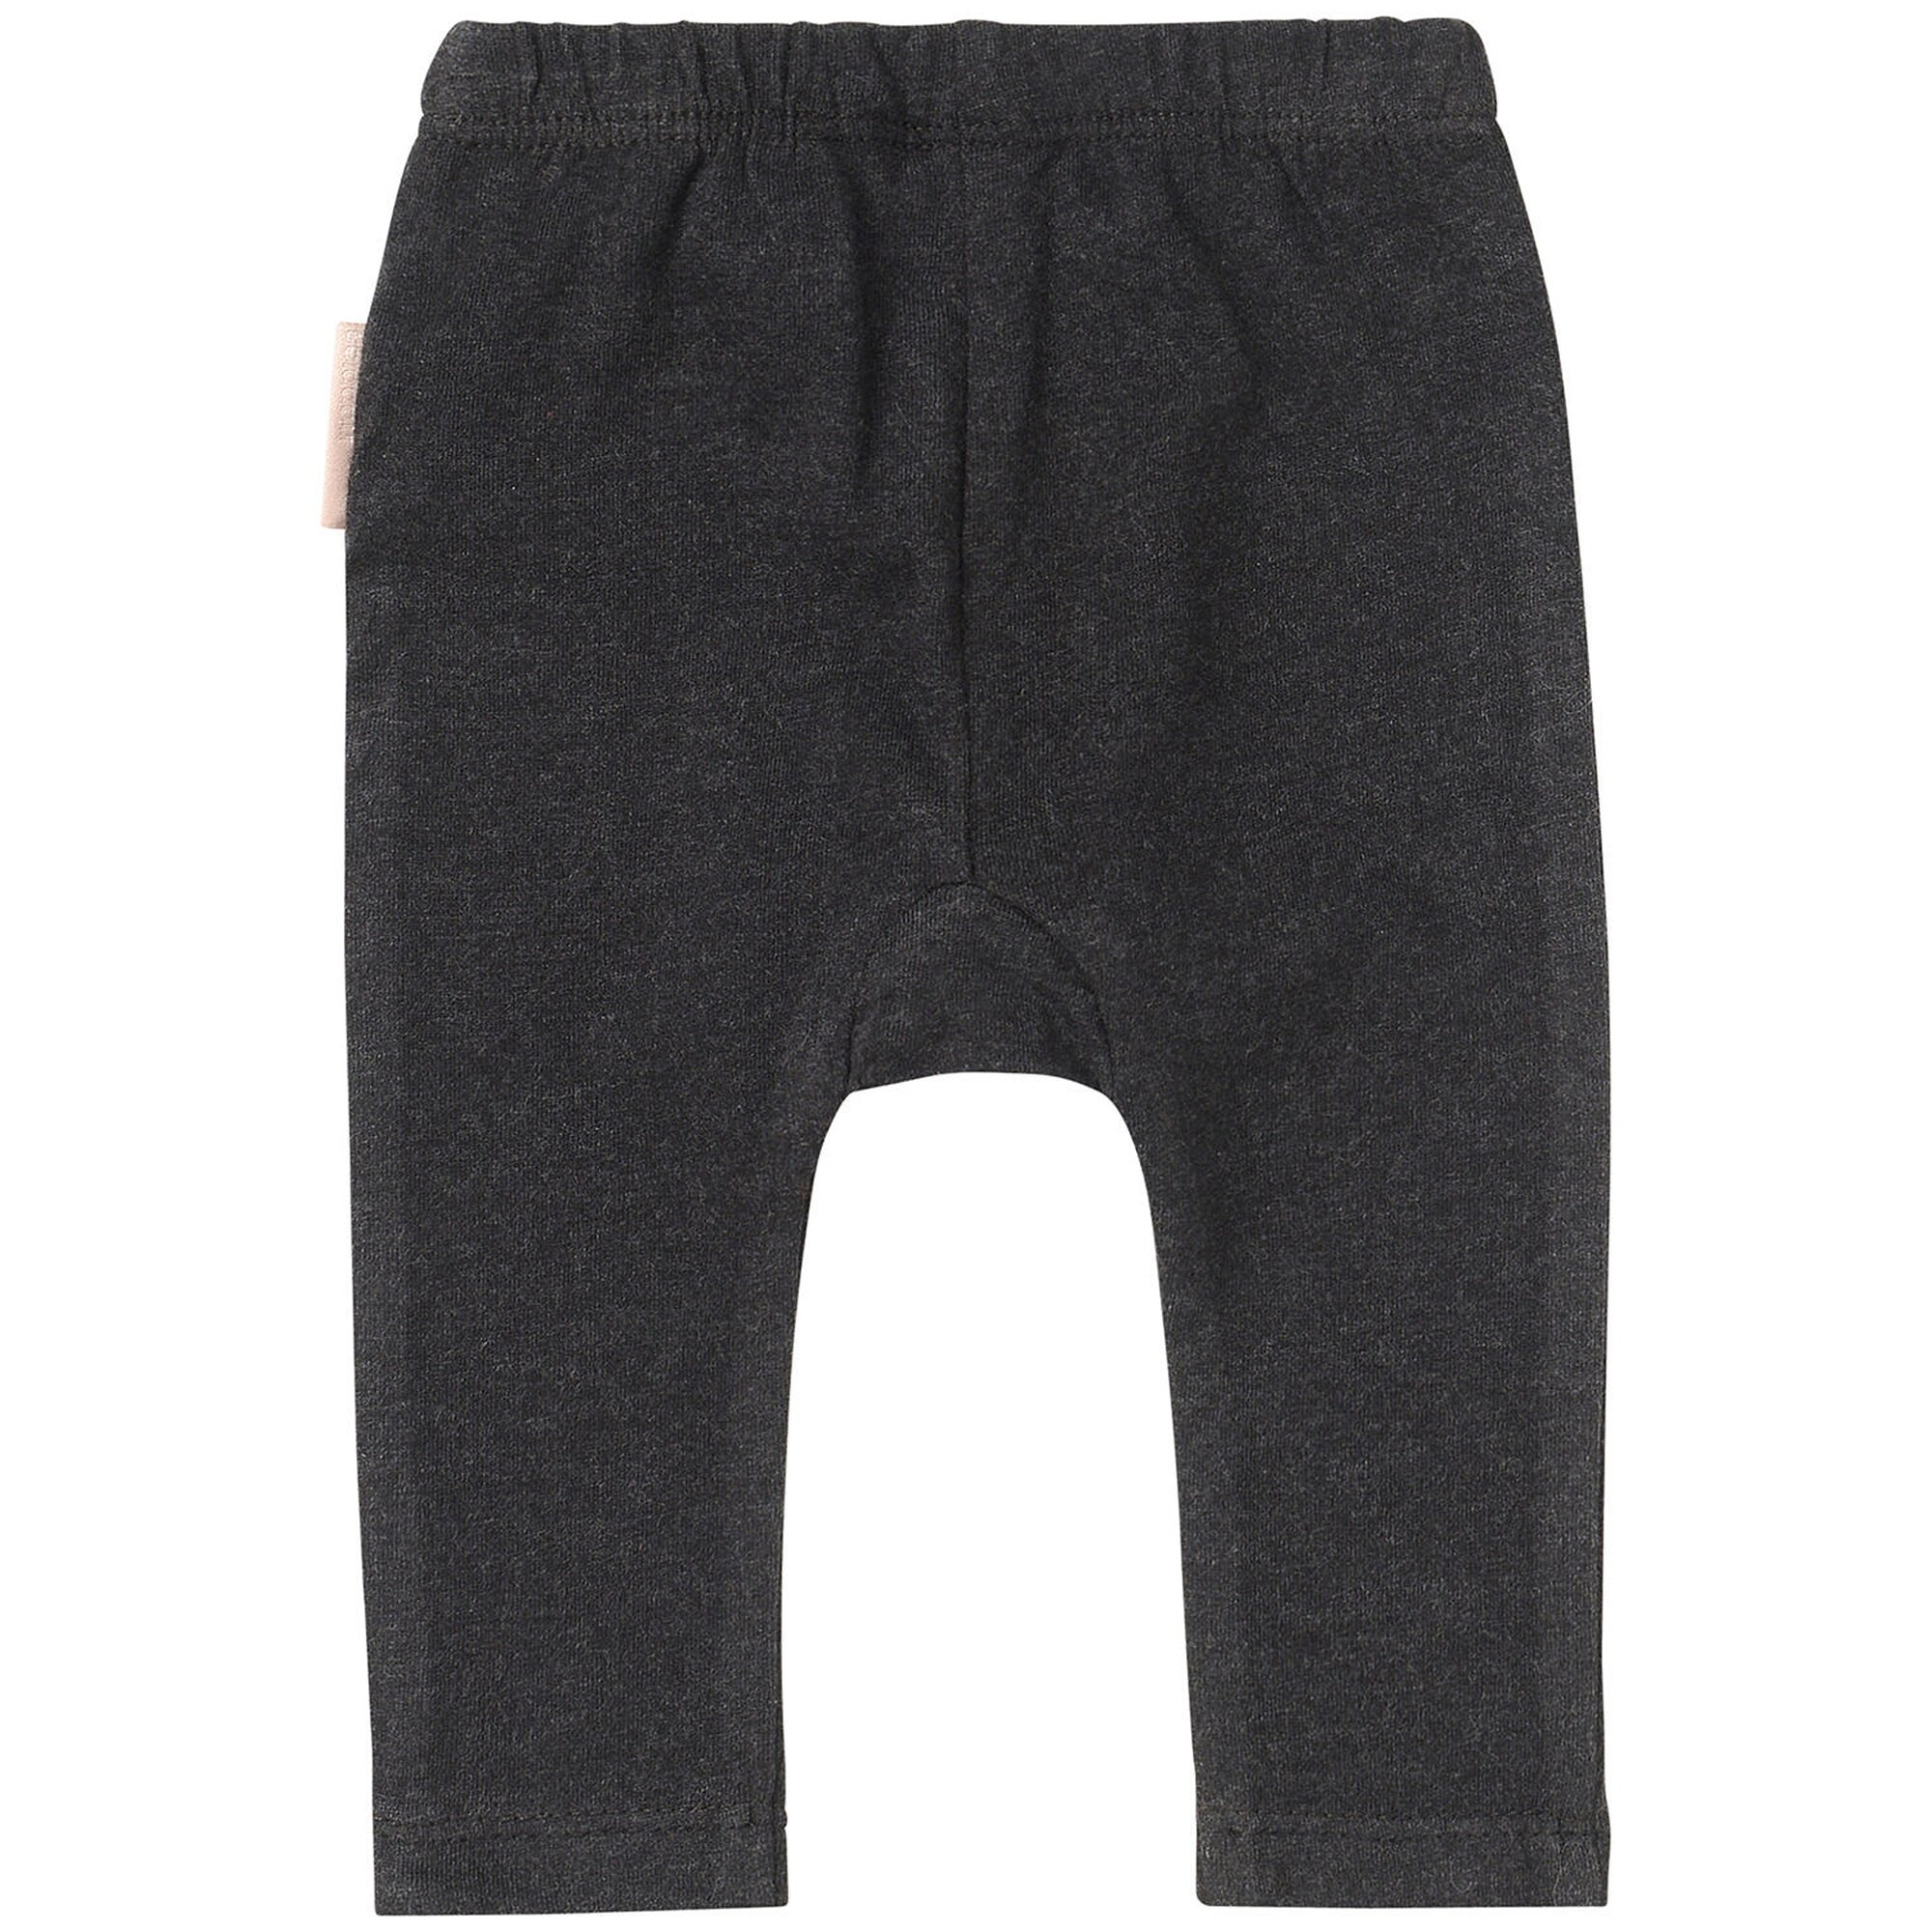 noppies-leggings-impruneta, 12.99 EUR @ babywalz-de